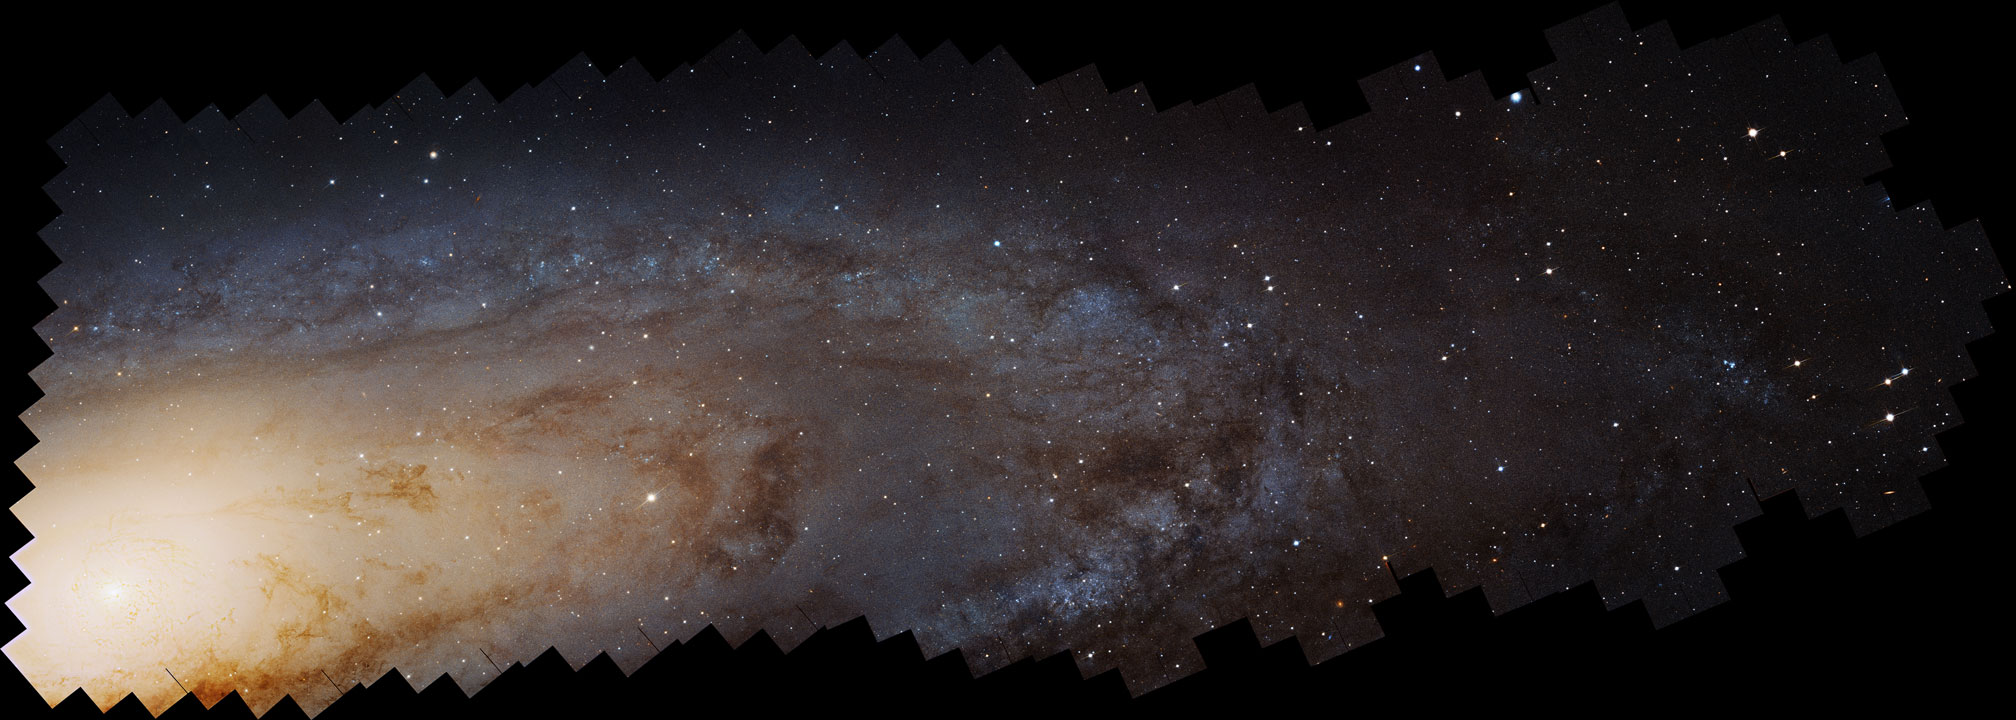 100 Million Stars in the Andromeda Galaxy | Image Credit:  NASA ,  ESA ,  J. Dalcanton , B. F. Williams, L. C. Johnson ( U. Washington ),  PHAT team ,  R. Gendler